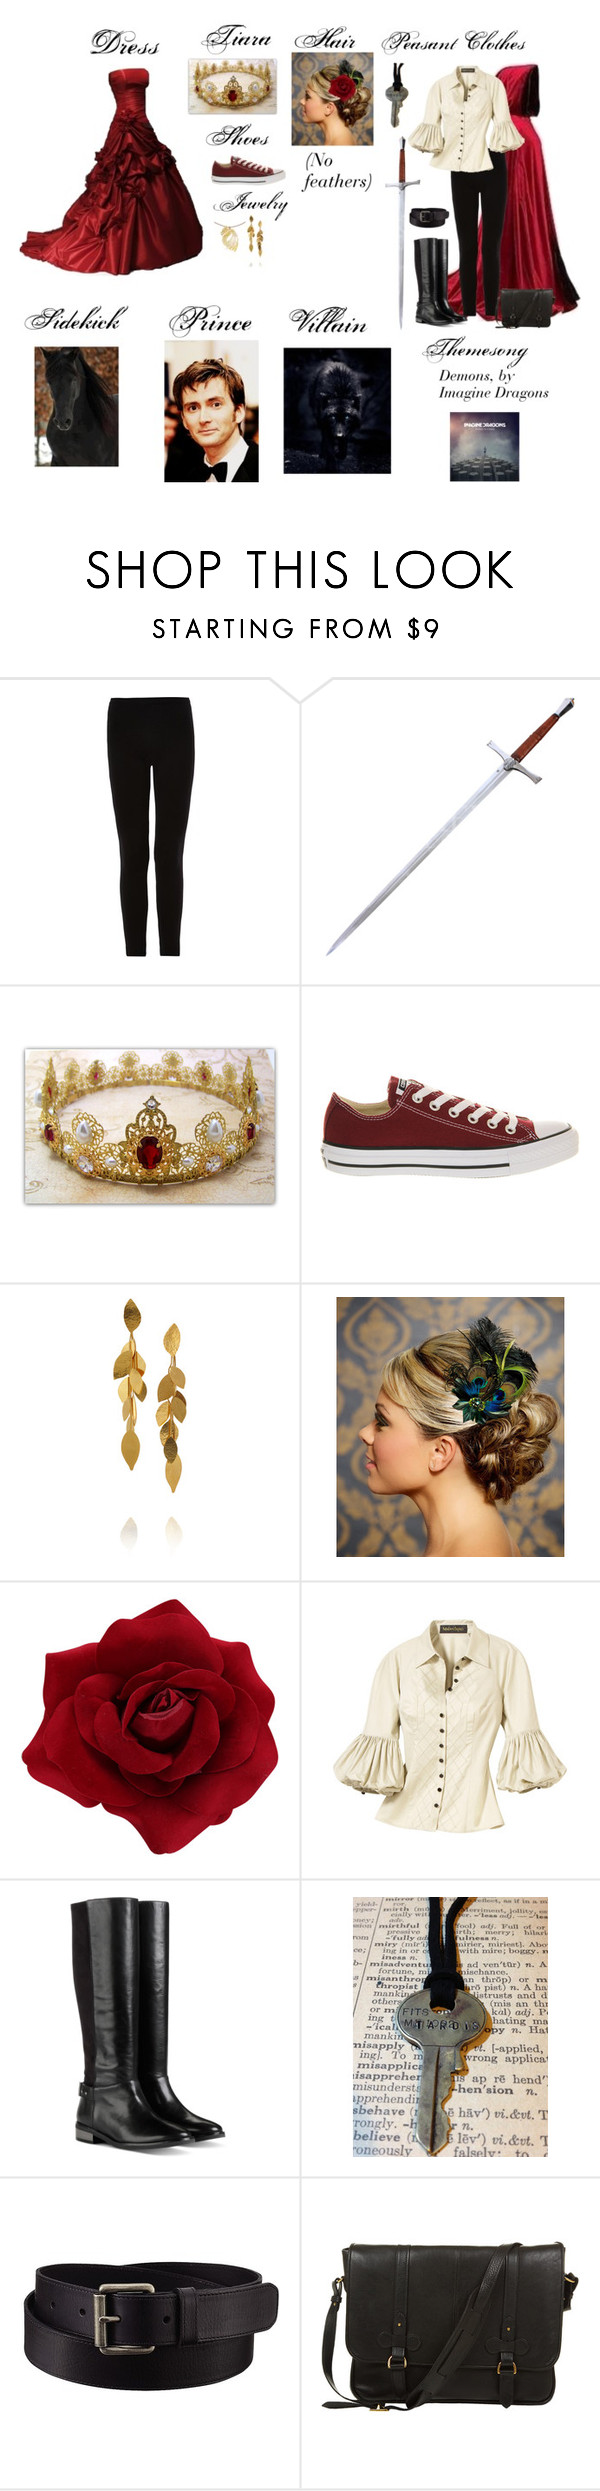 """""""Me as a Disney Princess"""" by anikiam ❤ liked on Polyvore featuring Isabel Marant, Converse, Hervé Van Der Straeten, Cole Haan, Uniqlo, Daines & Hathaway and Ayame"""